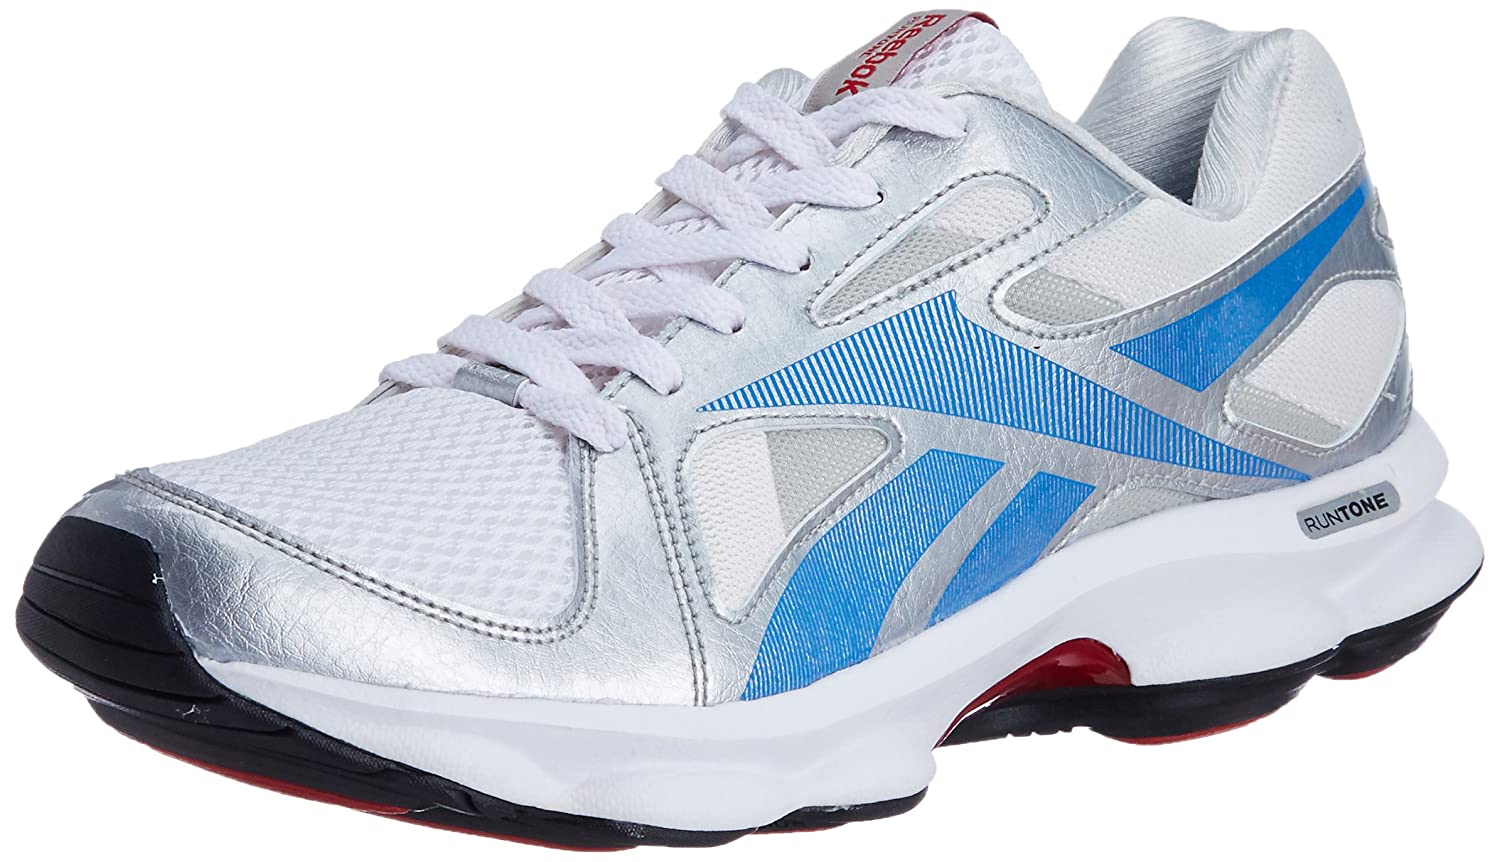 Zapatos Reebok Amazon India srIUi717